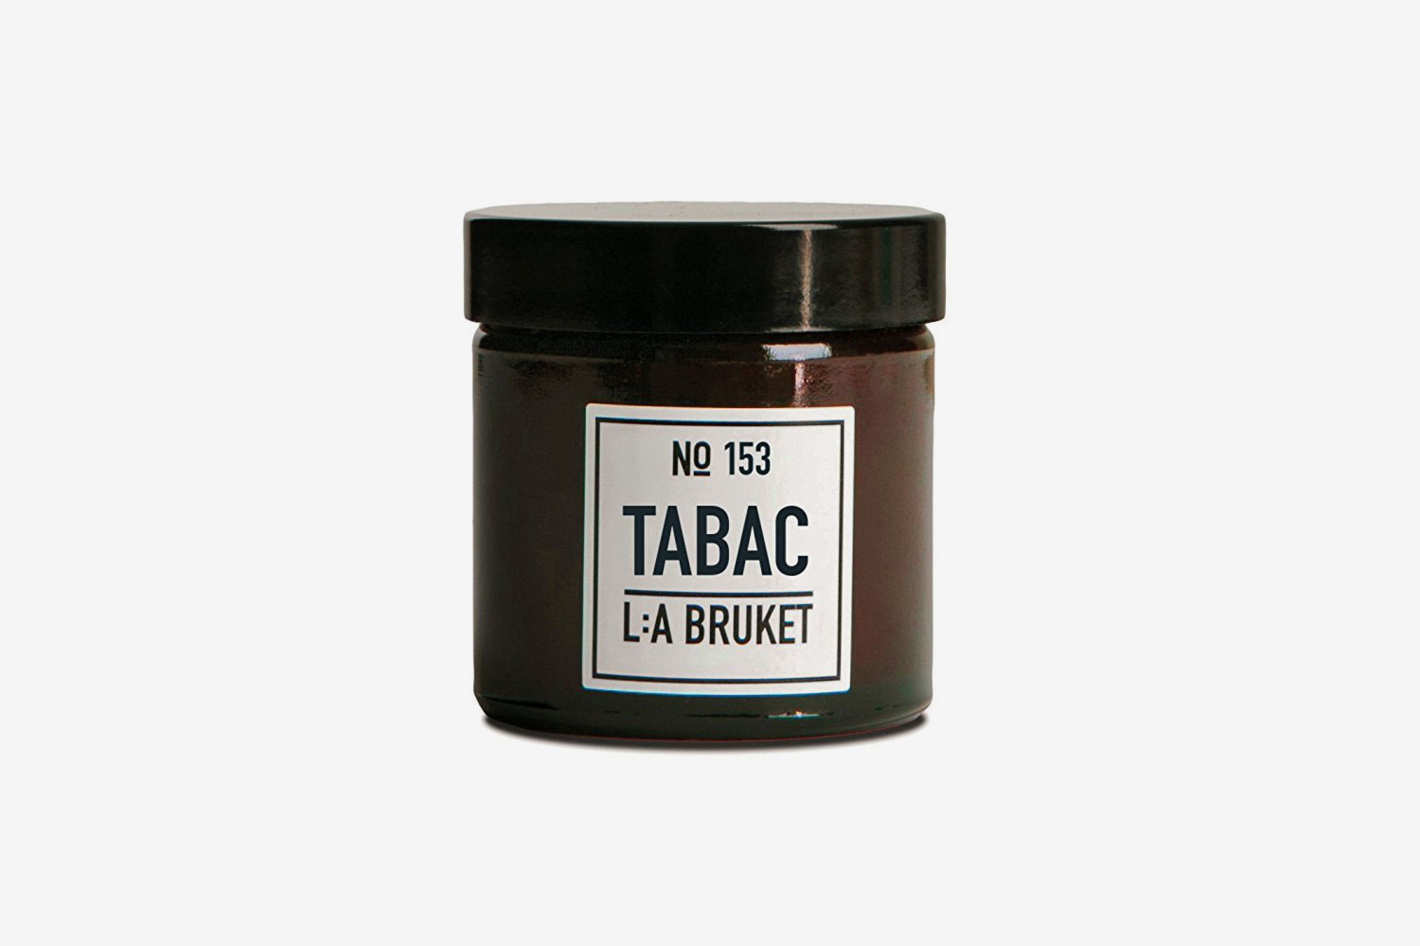 L:A Bruket No.153 Tabac Scented Candle